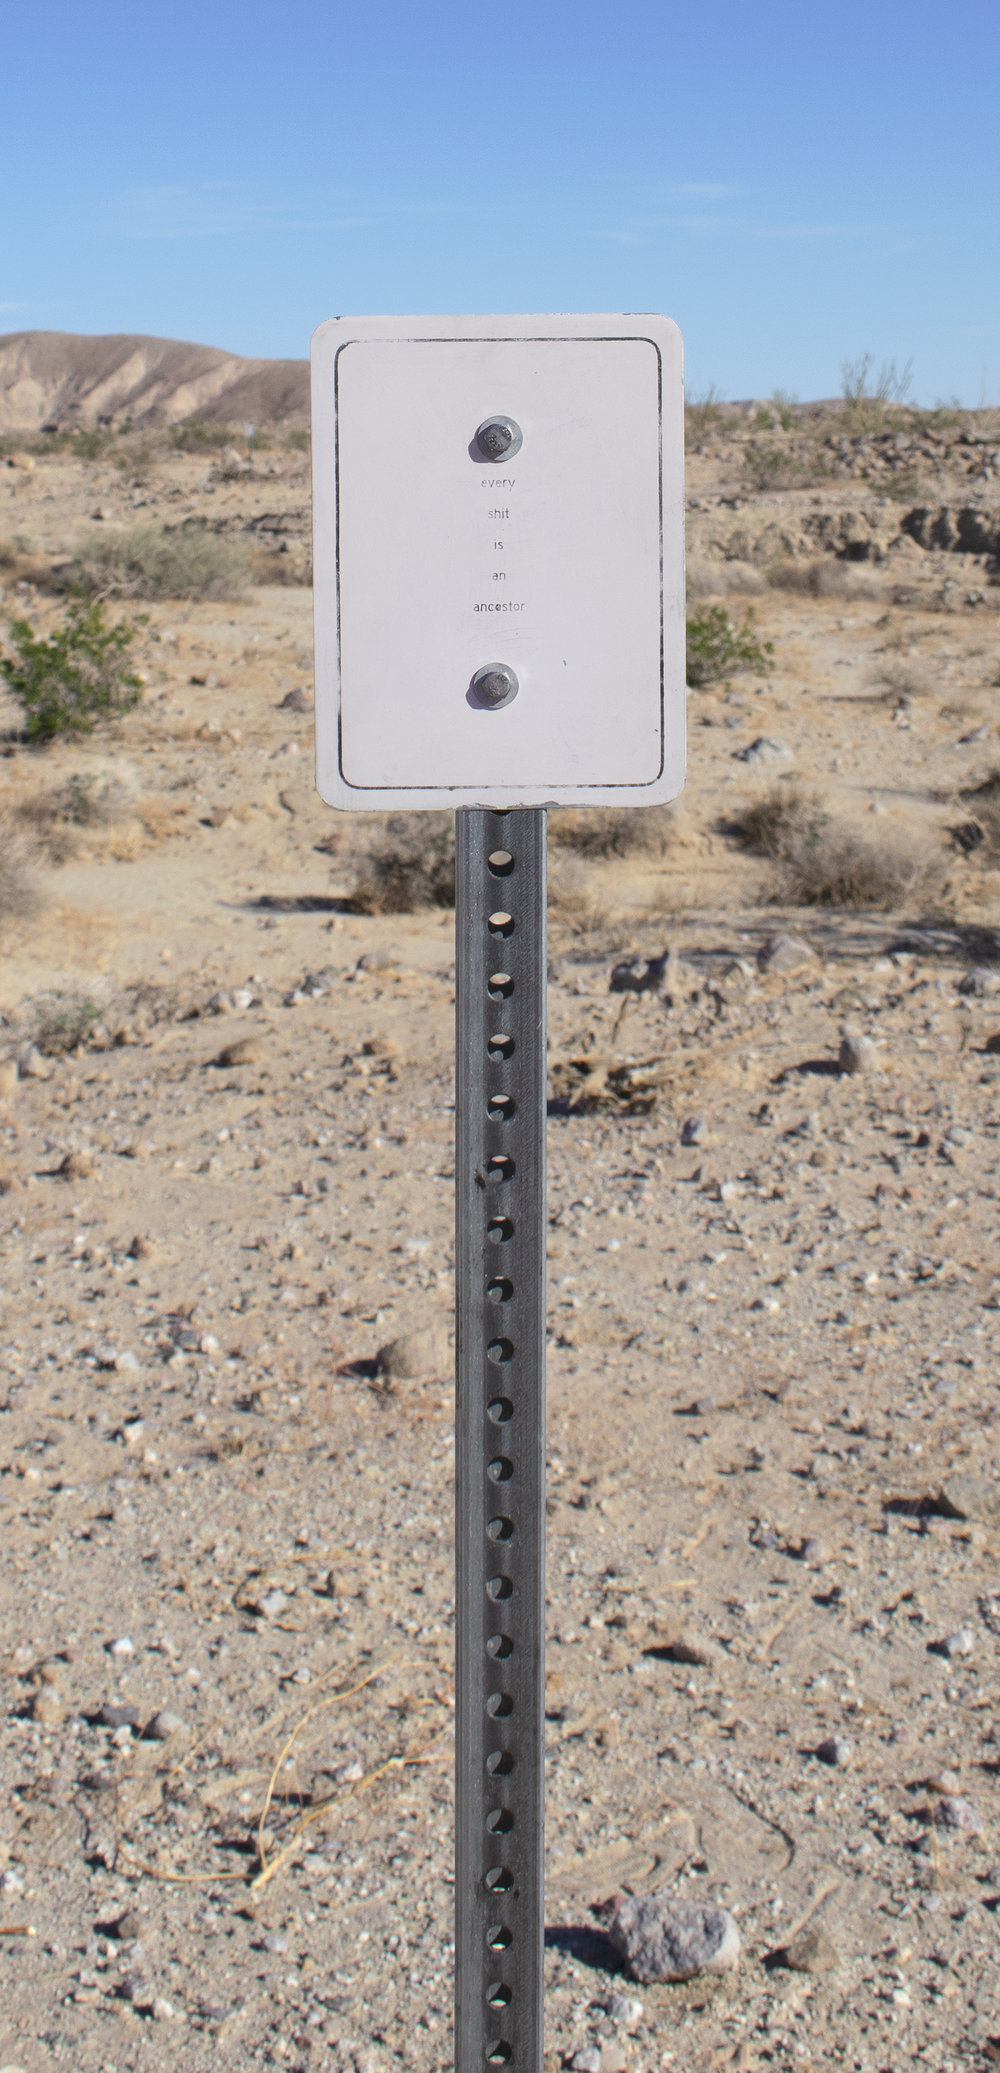 children of the sun    Galvanized Steel Signs and Posts   Dimensions Variable  2018-19